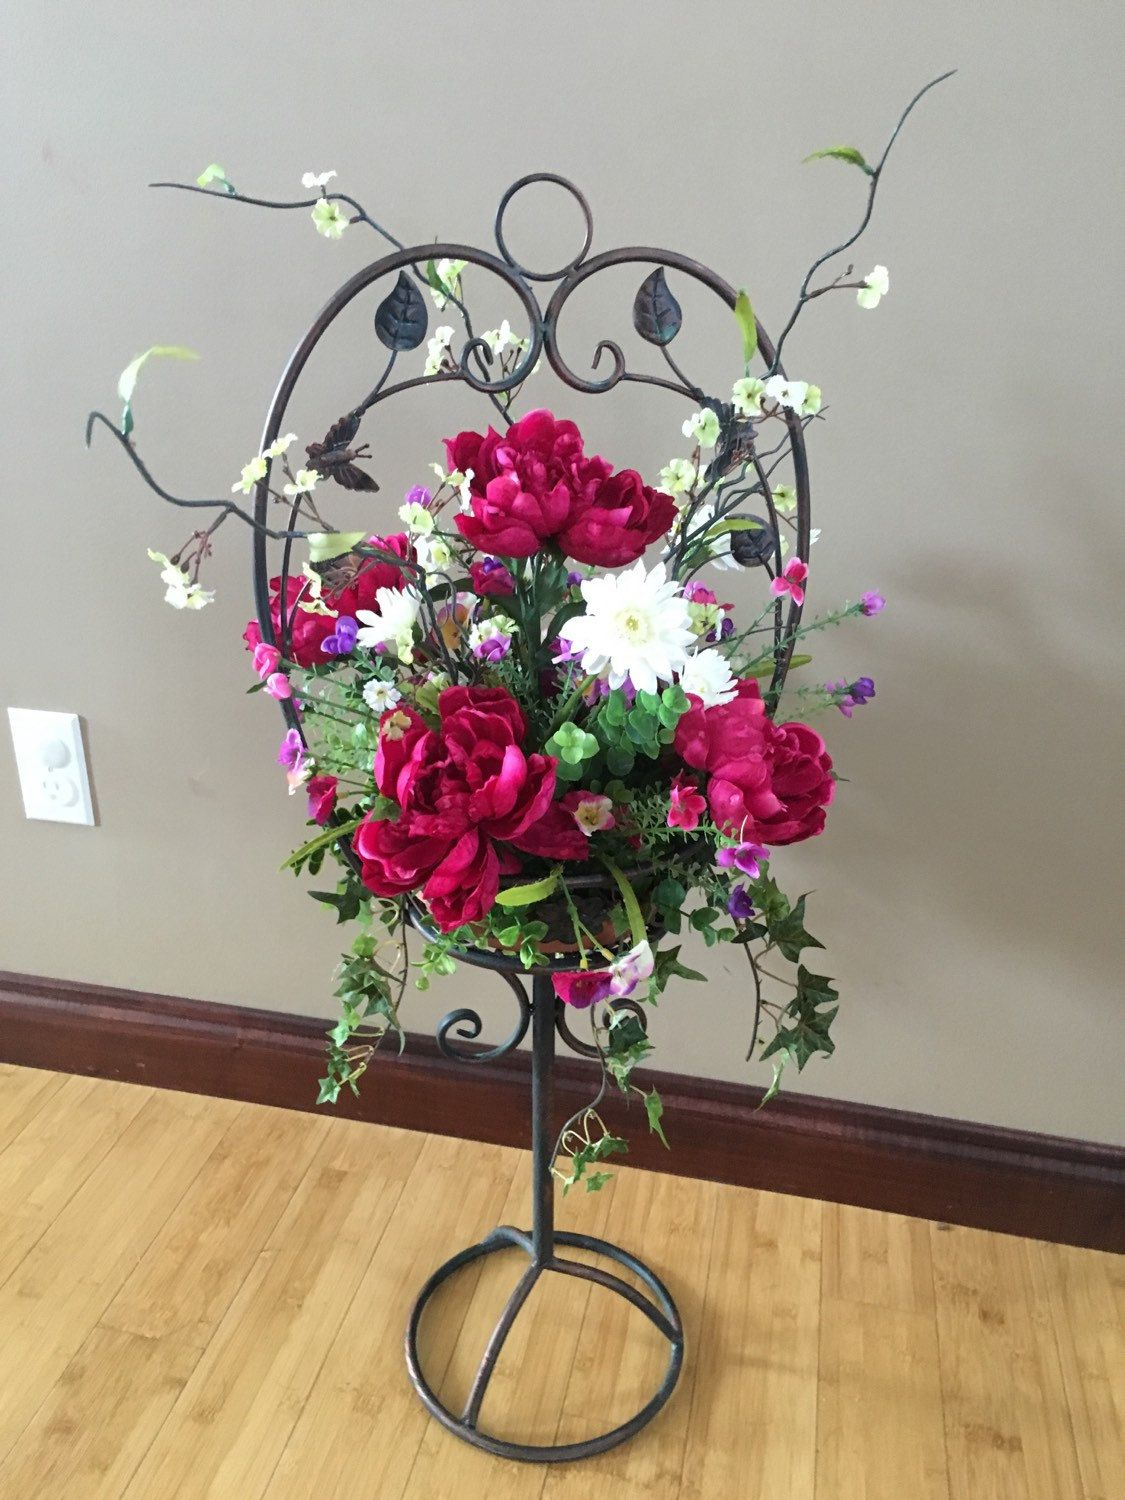 Home decor artificial flowers  Wrought Iron stand with floral arrangement home decor silk floral